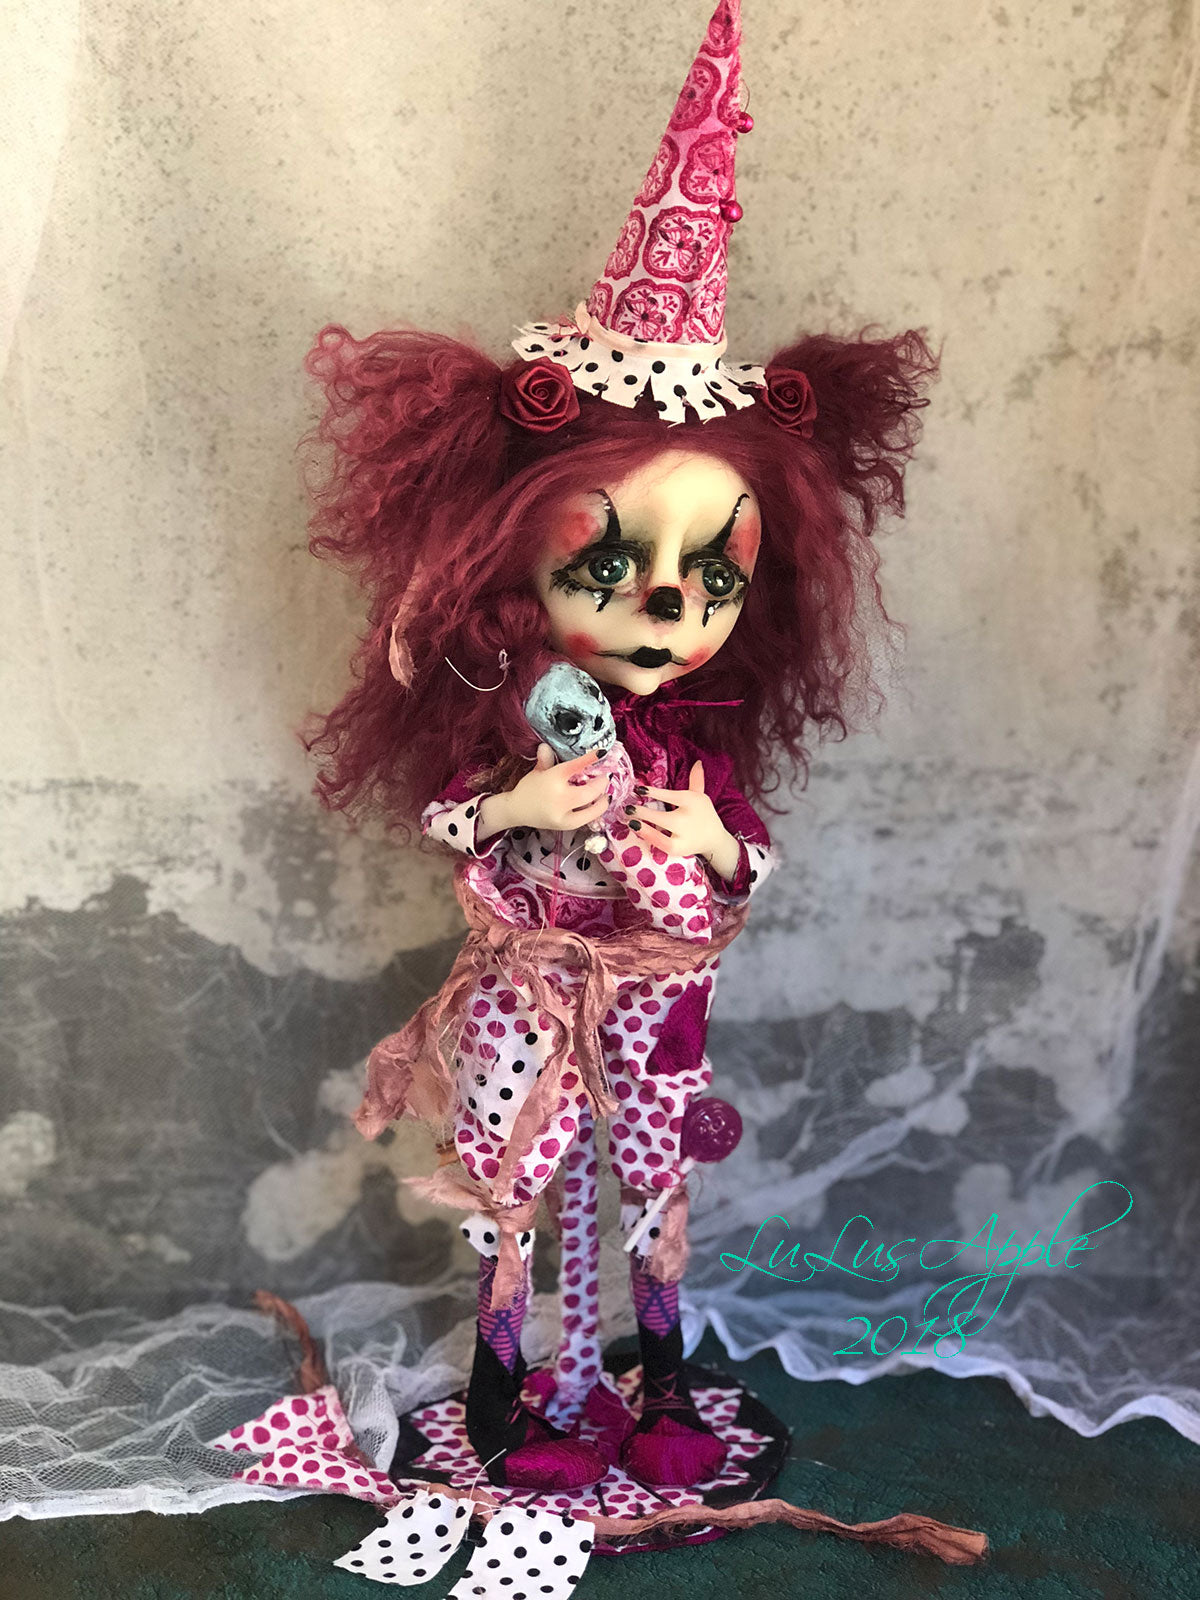 Raspberry BaggyBottom and Baby Freakish The Clown Circus sadness OOAK LuLusApple Art Doll